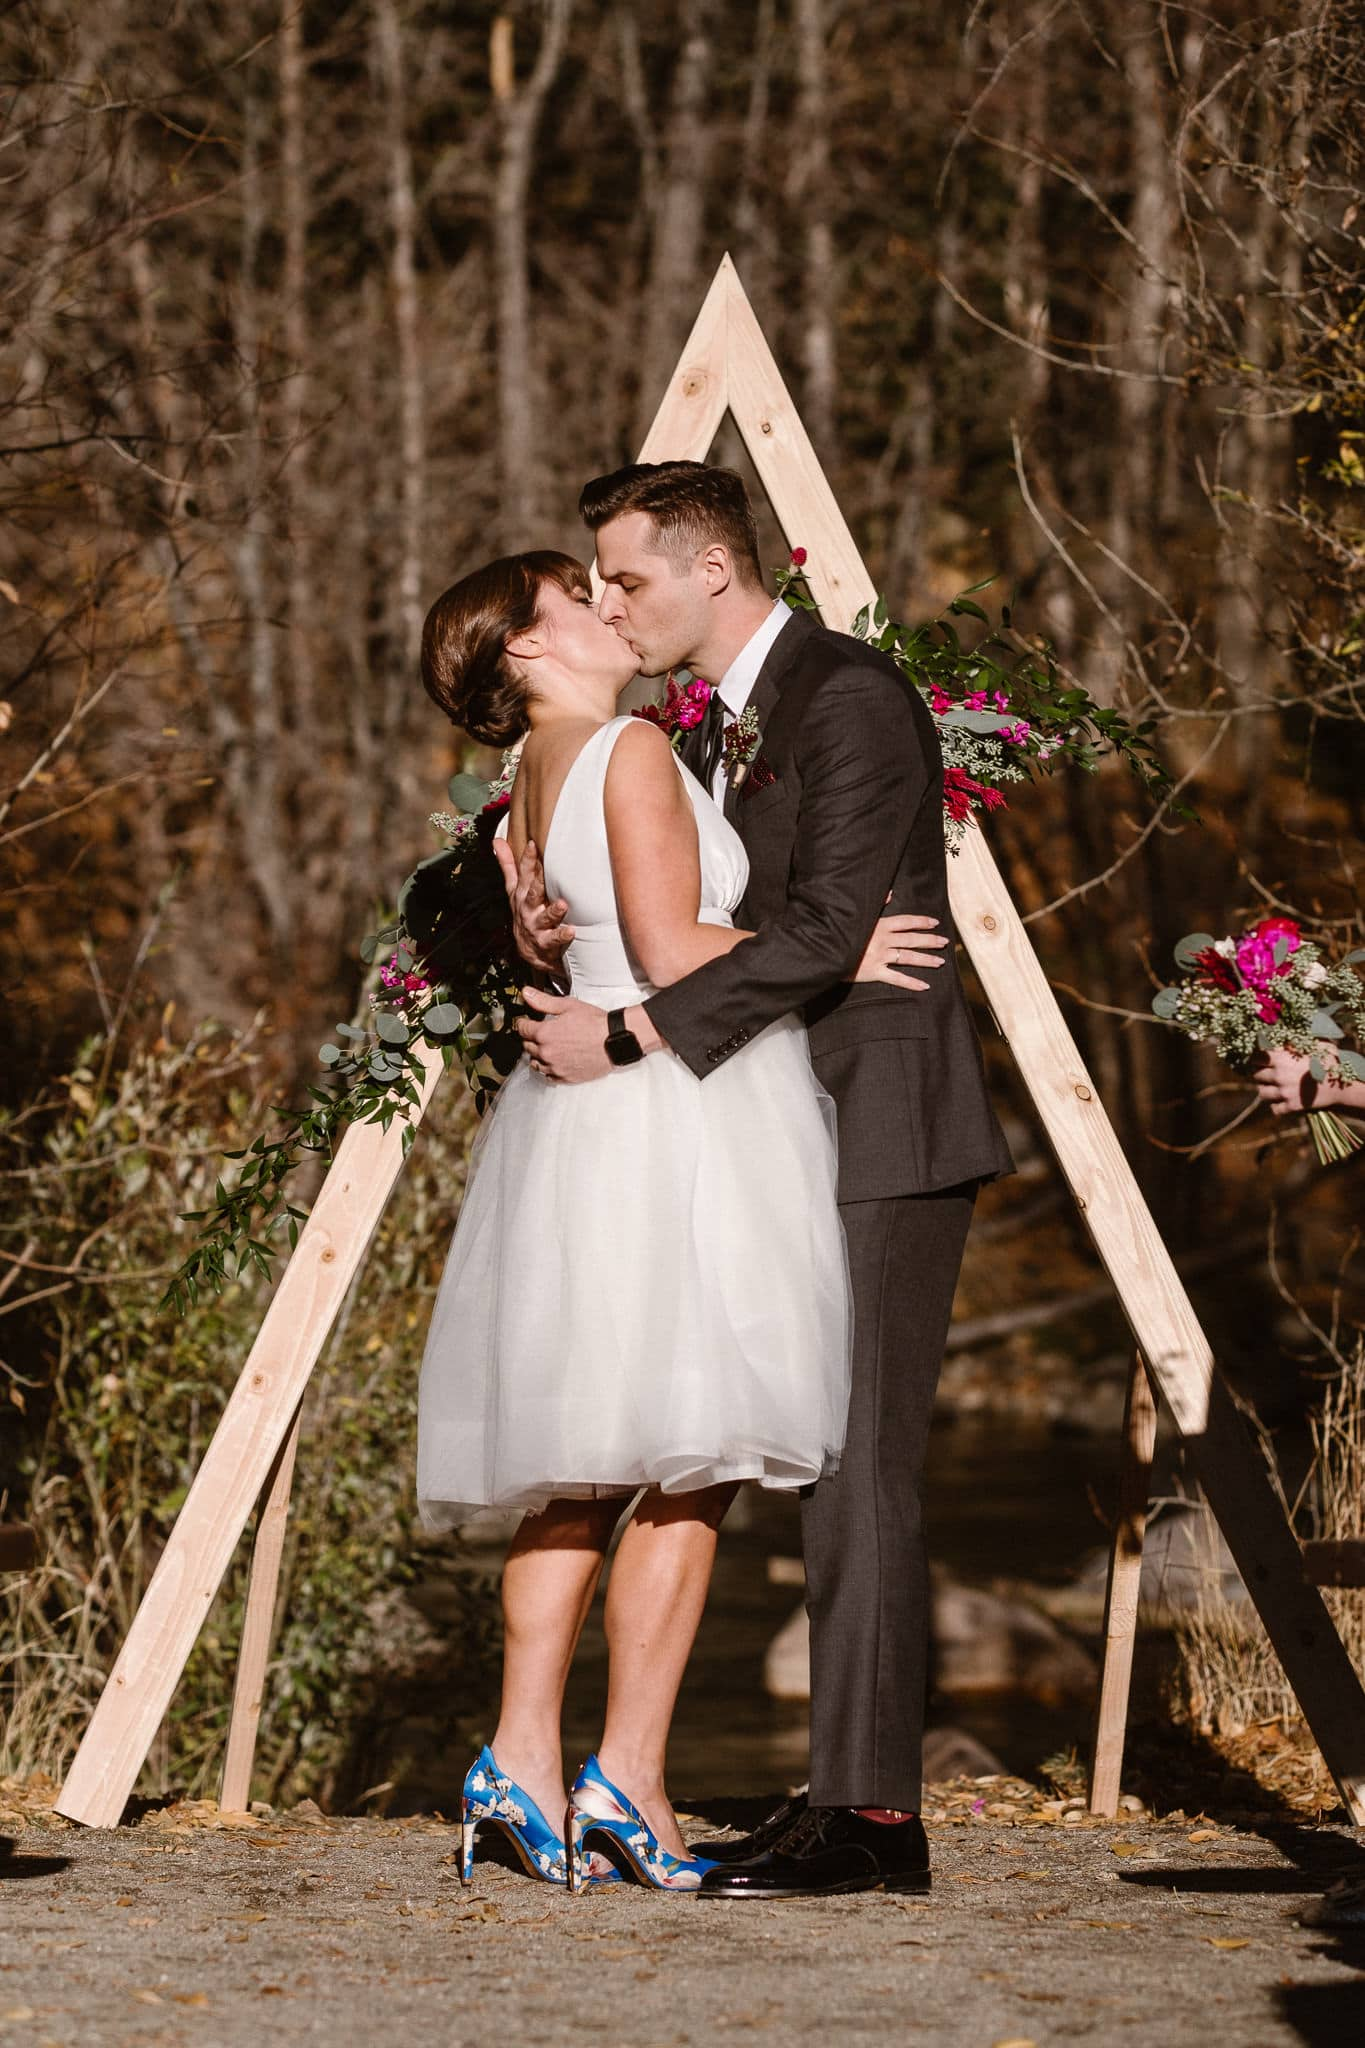 Silverthorne Pavilion wedding ceremony, Colorado wedding photographer, outdoor wedding ceremony, Colorado mountain wedding venues, bride and groom first kiss